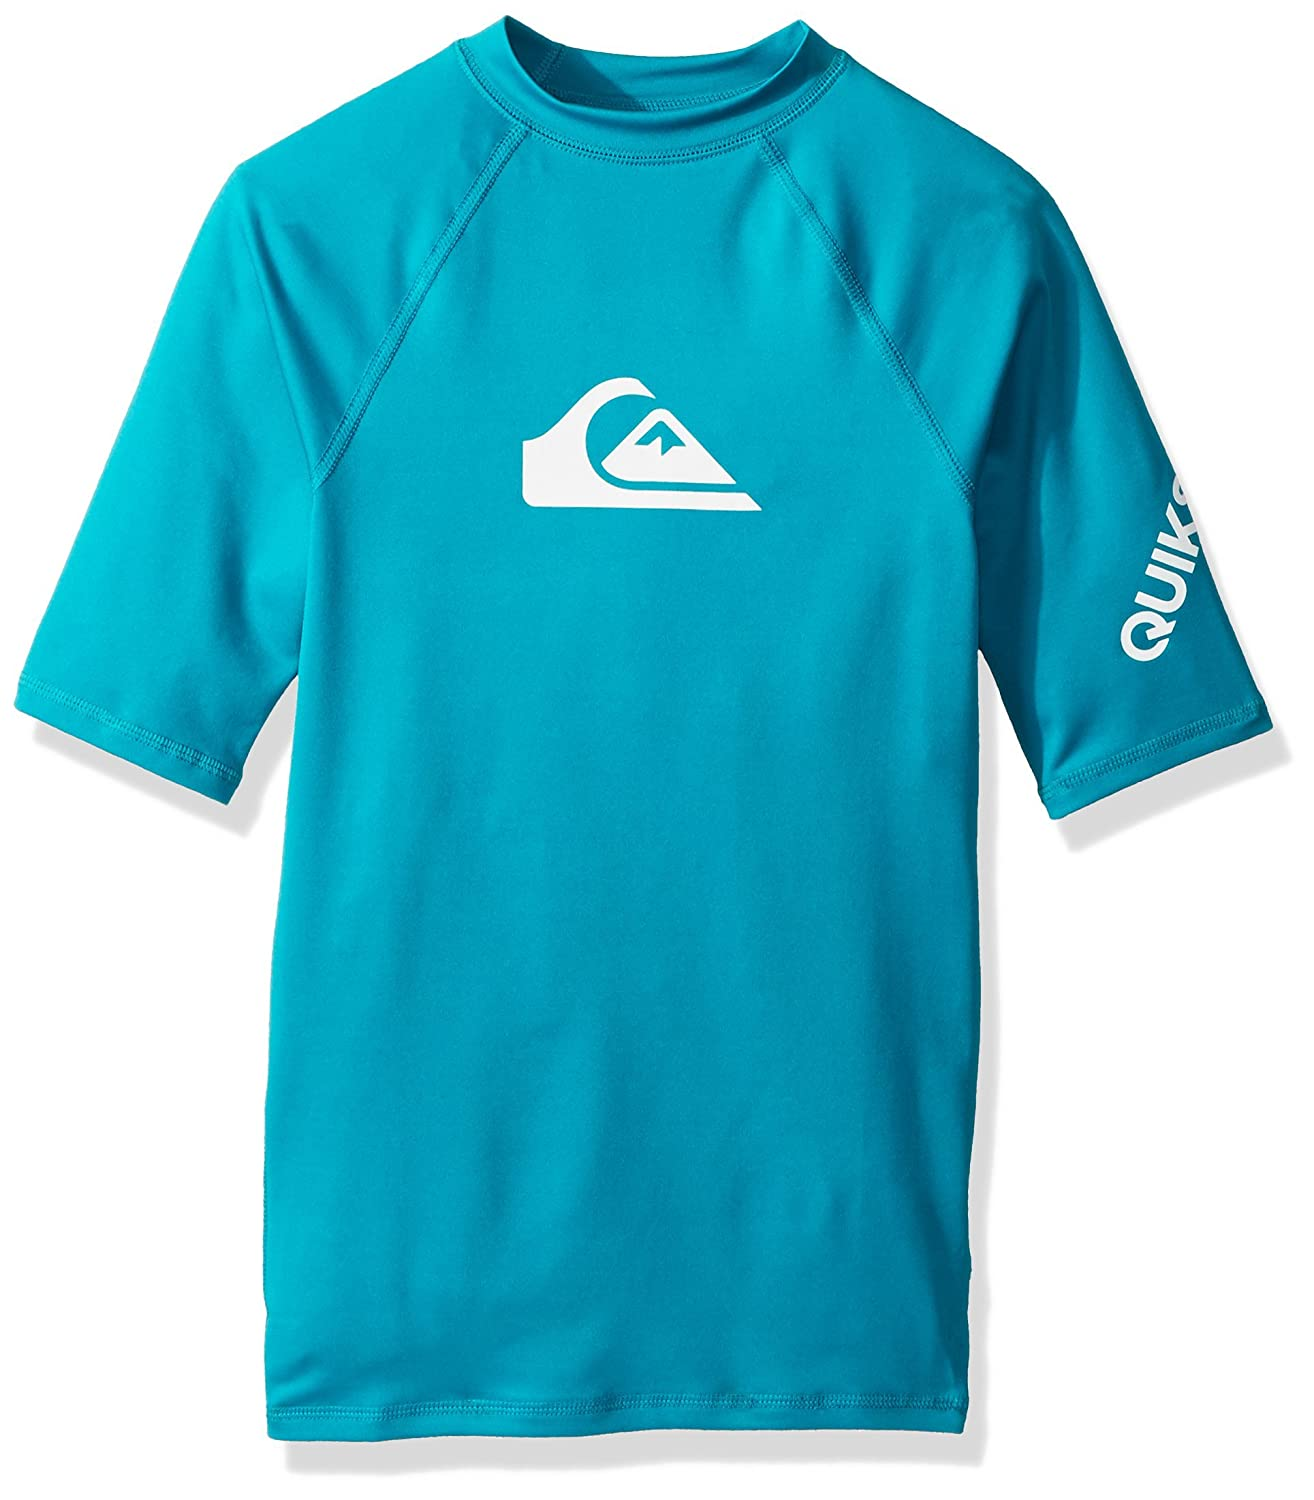 Quiksilver Boys' Big Time Short Sleeve Surf Tee Rashguard EQBWR03060